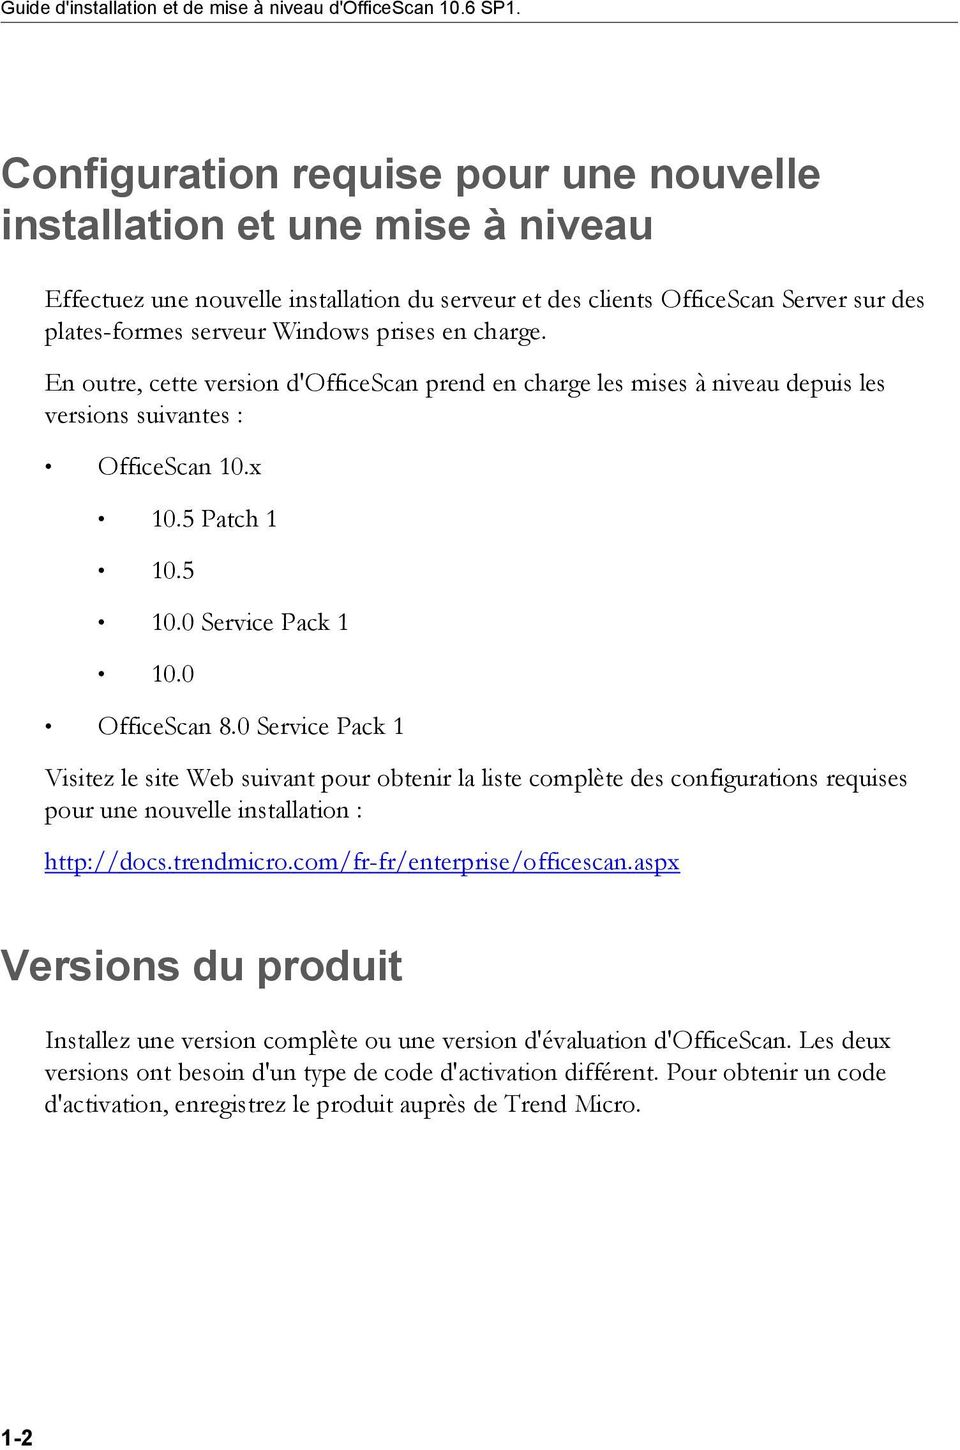 en charge. En outre, cette version d'officescan prend en charge les mises à niveau depuis les versions suivantes : OfficeScan 10.x 10.5 Patch 1 10.5 10.0 Service Pack 1 10.0 OfficeScan 8.